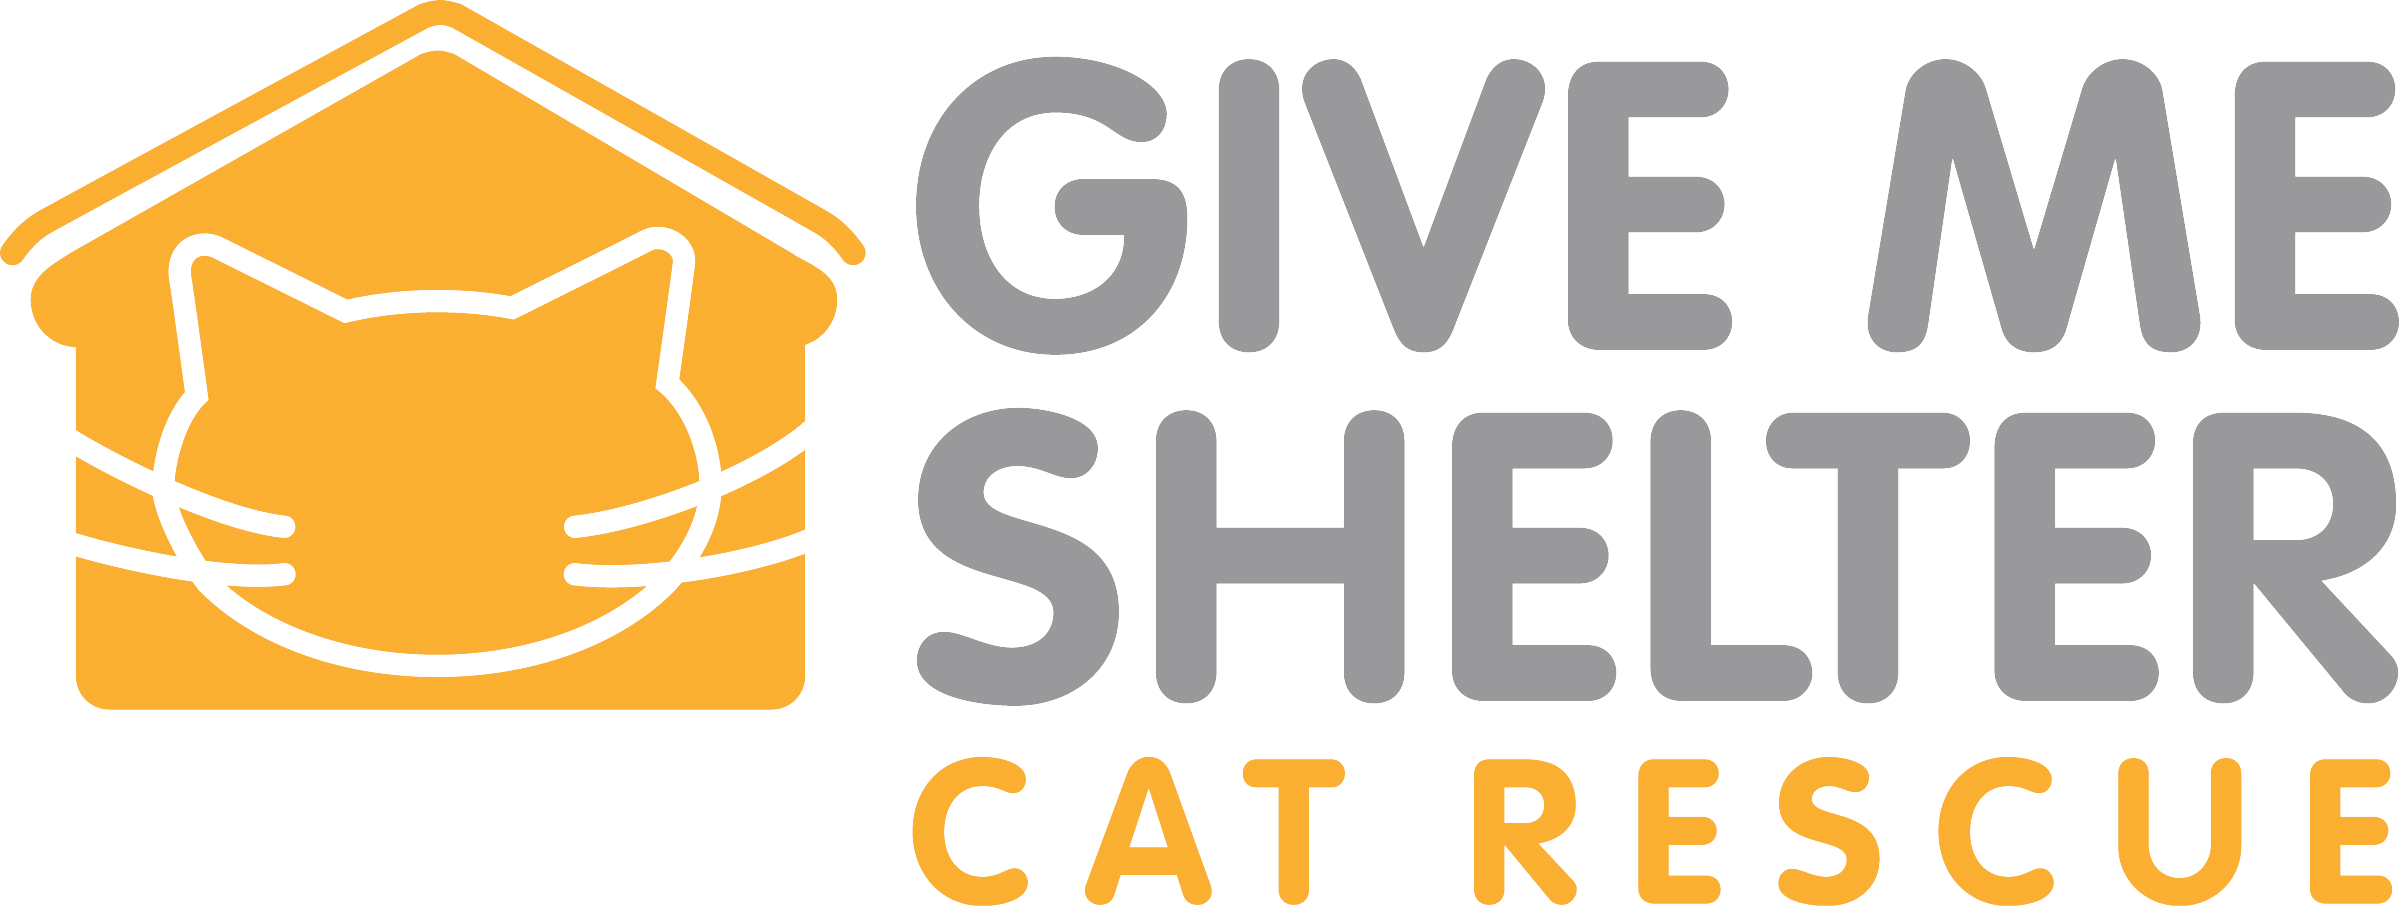 Cats in shelters png. Welcome to give me